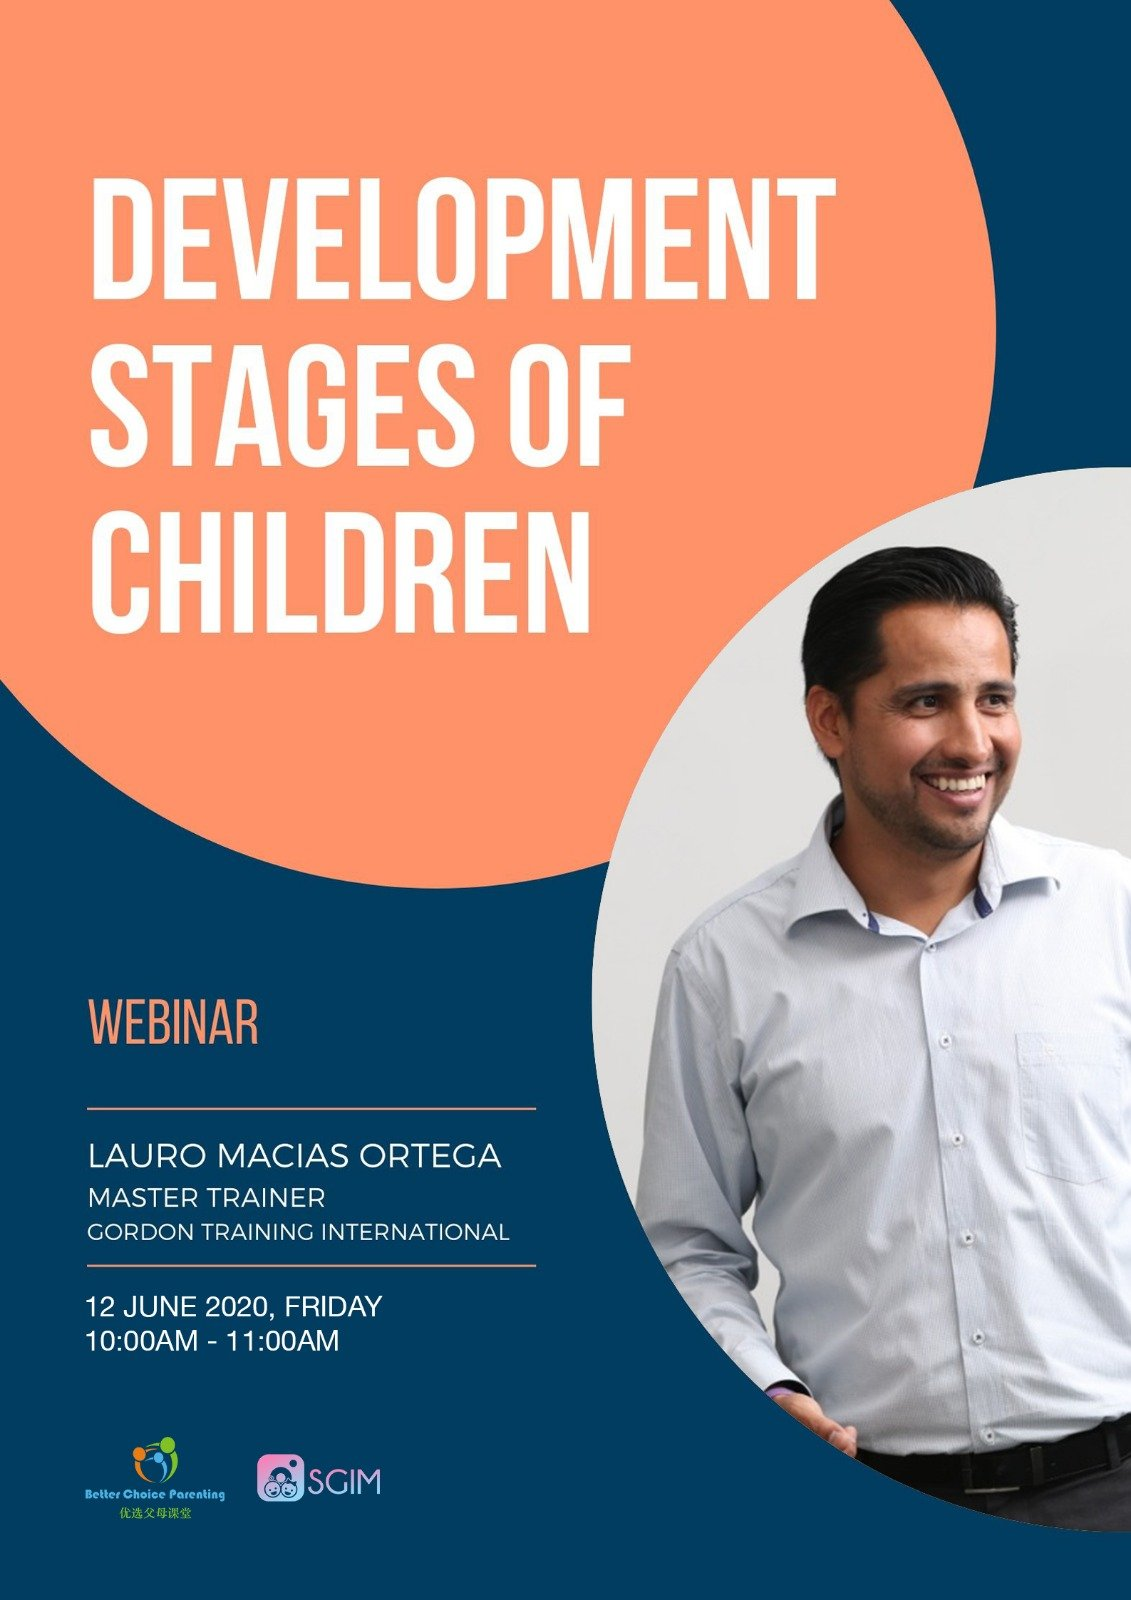 12 June, Fri, 10-11am TOPIC: Development Stages of Children